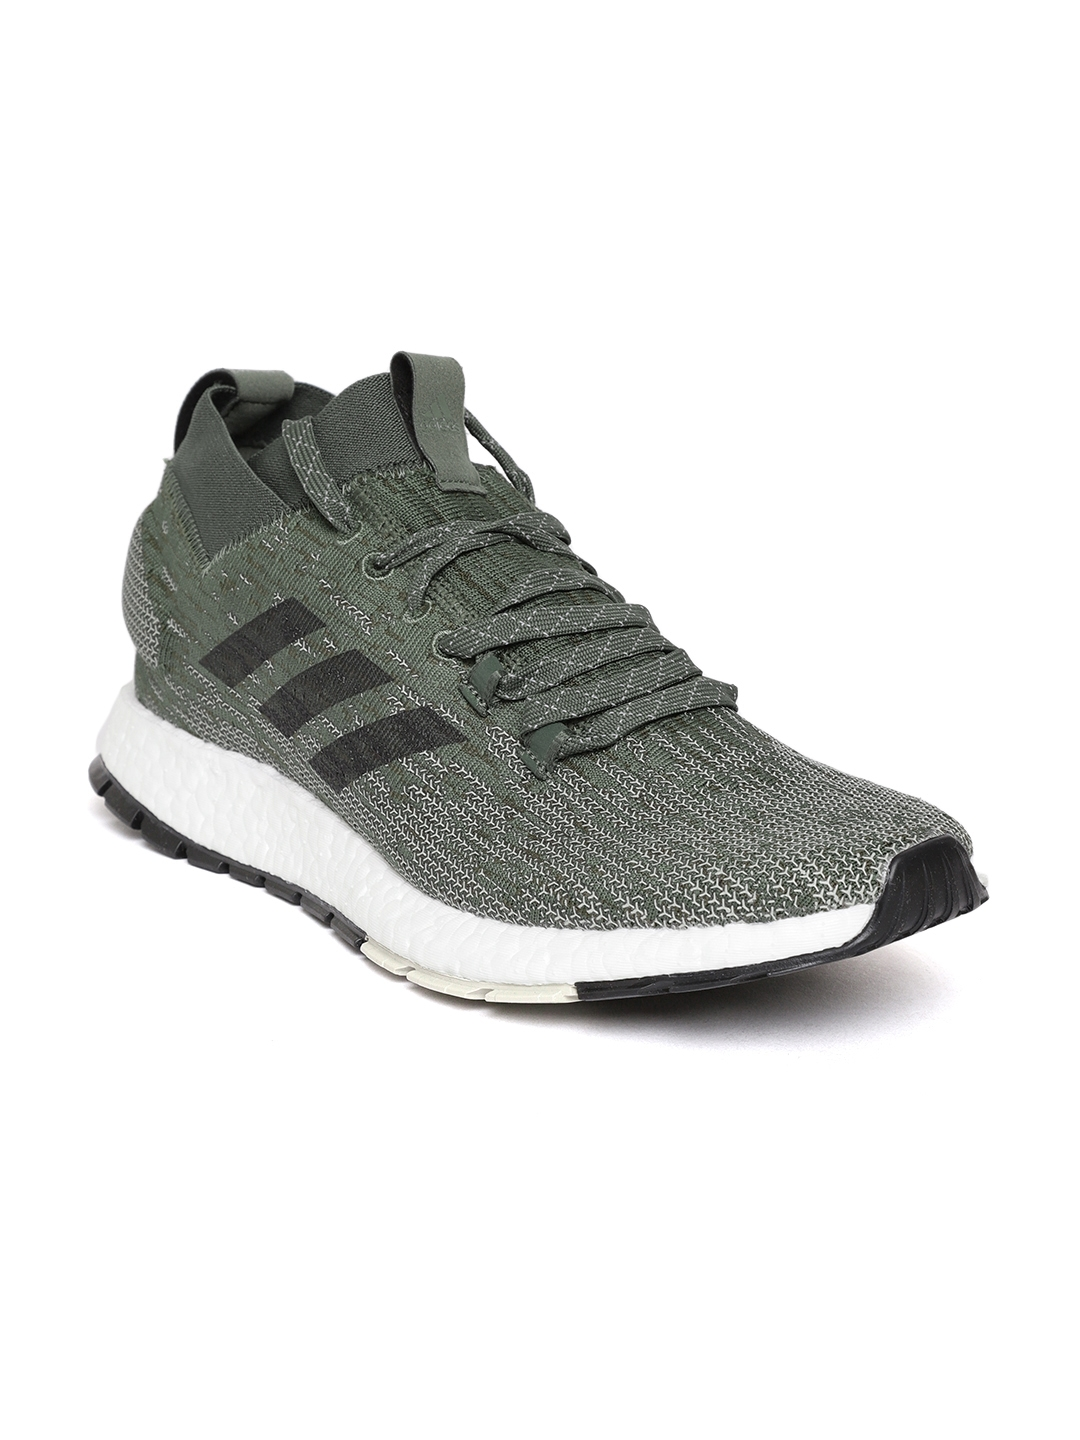 854f08827b63f ADIDAS Men Olive Green   Off-White Pureboost RBL Woven Design Running Shoes